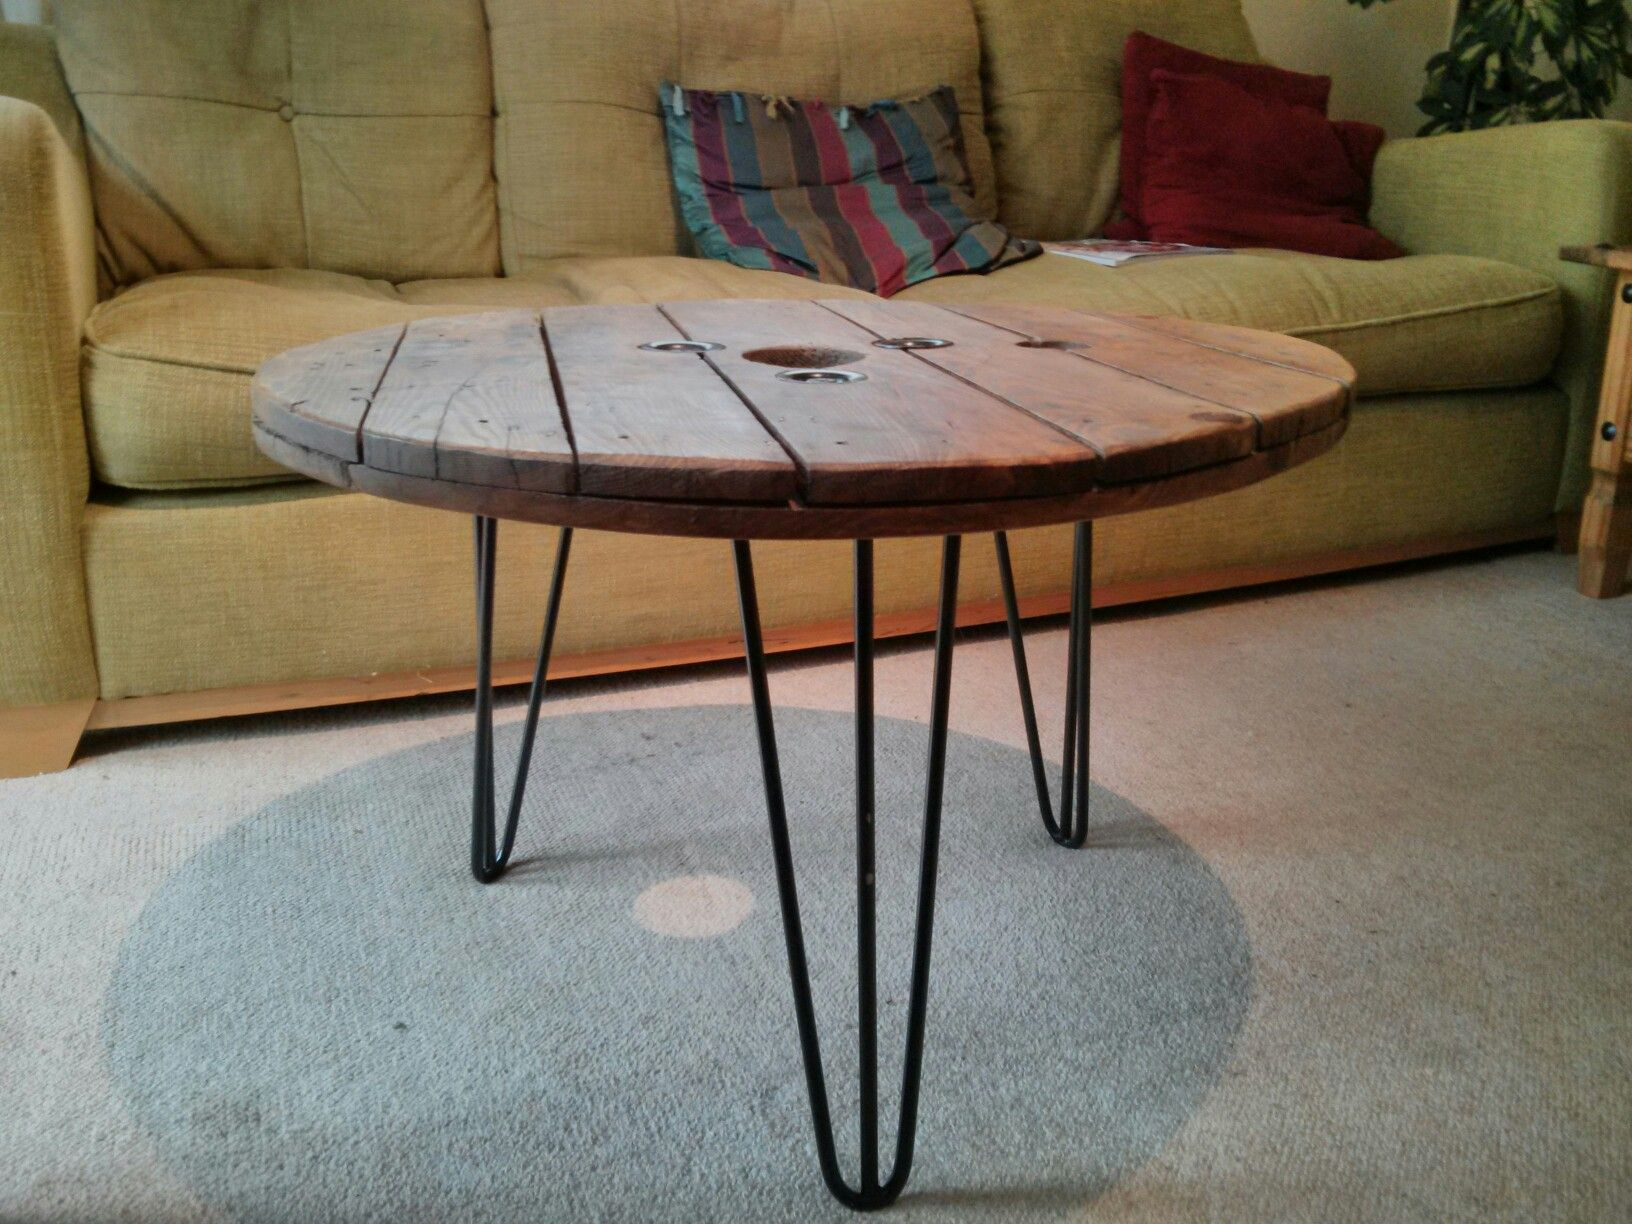 Upcycled Electric Cable Reel Now Coffee Table With Hairpin Legs Available For Sale 75 Https Www Gumtree Com P For Coffee Table Hairpin Leg Table Table [ 1224 x 1632 Pixel ]